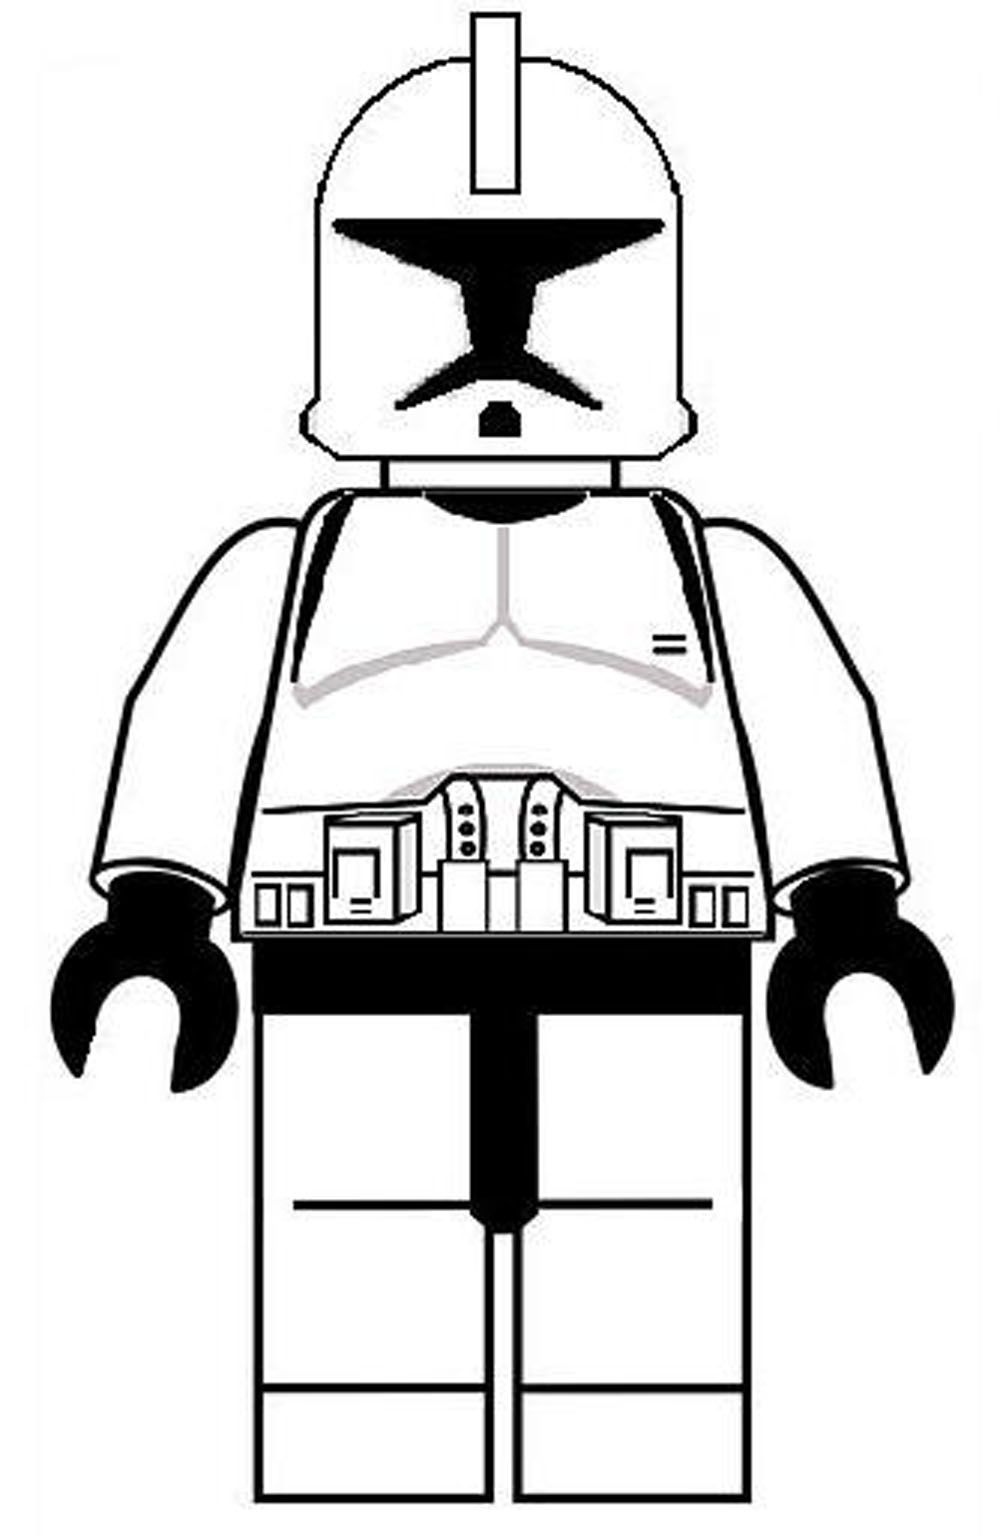 Coloring Pages Free Lego Star Wars Coloring Pages lego star wars coloring sheets az pages printable for kids and adults